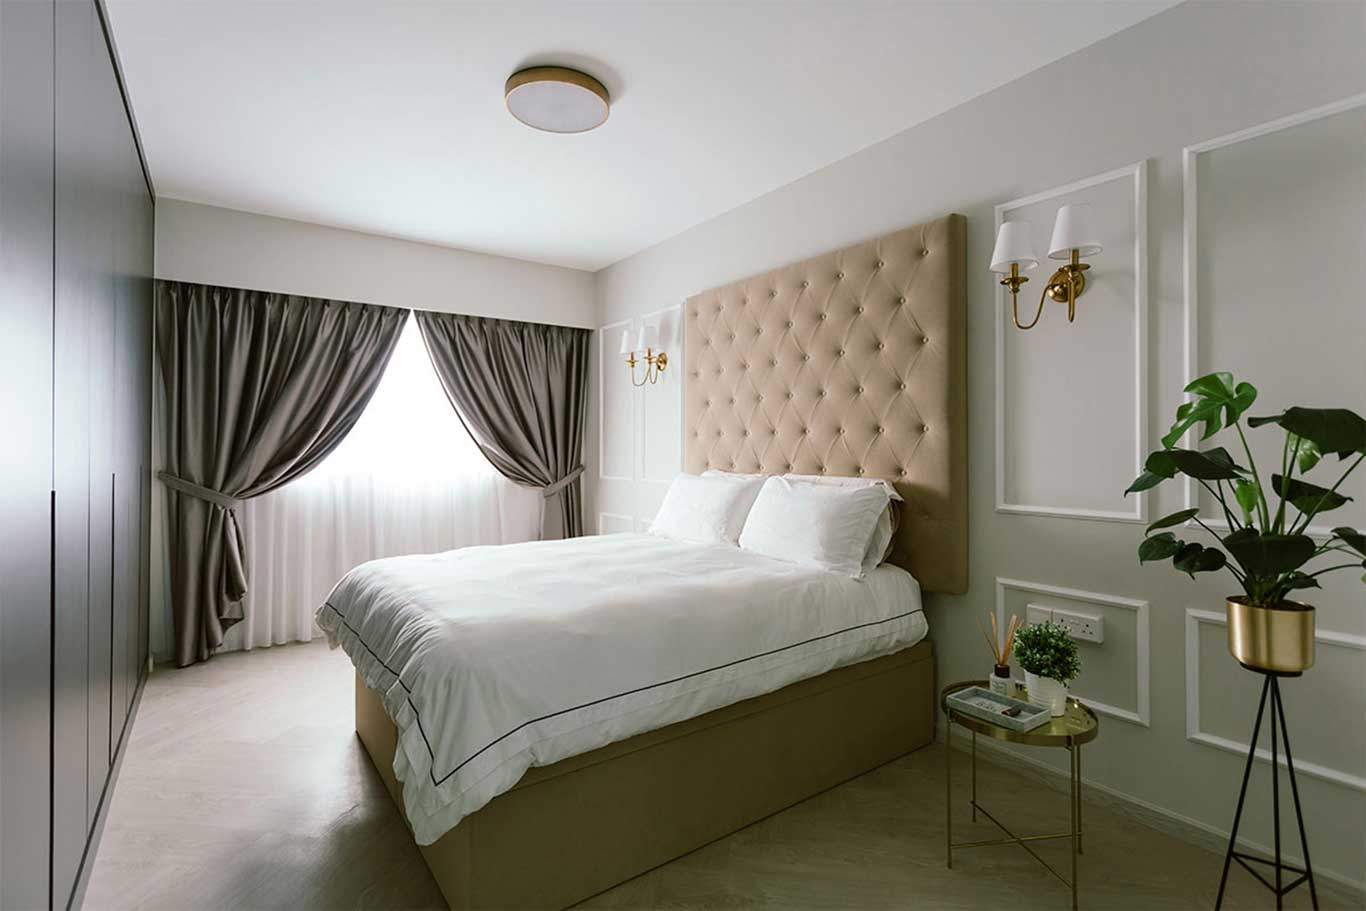 Modern Victorian bedroom with lightly- quilted headboard and sconce wall lights.